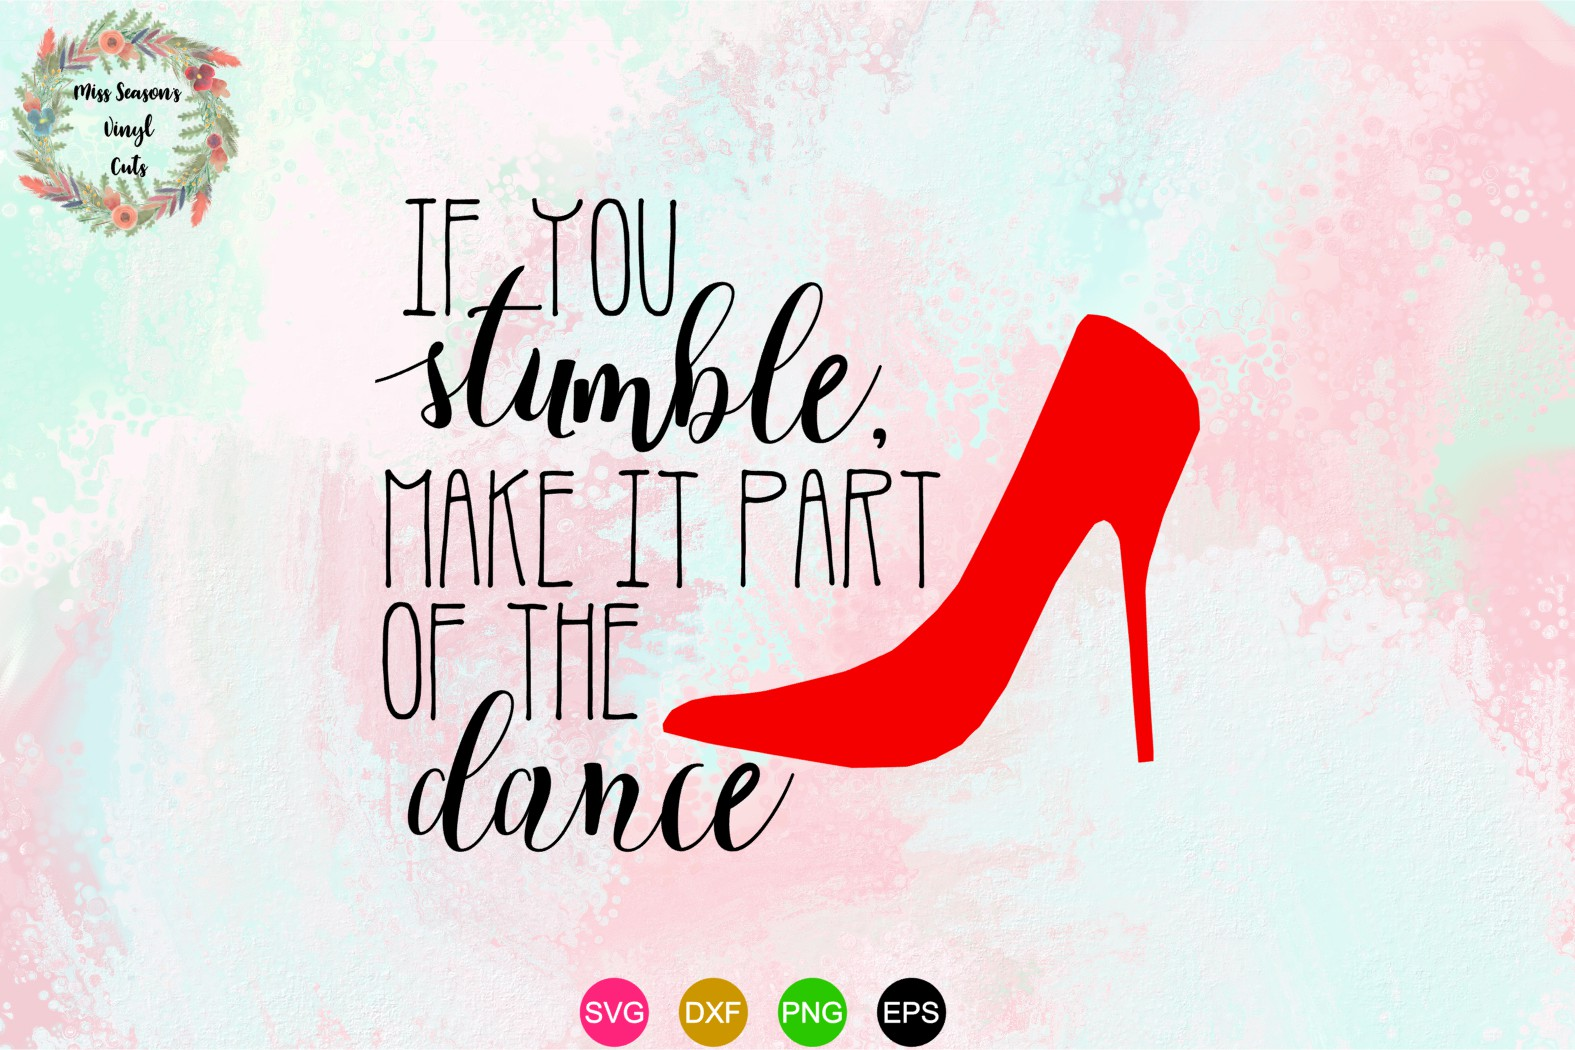 If you stumble make it a part of your Dance SVG , Dxf, Eps, example image 1